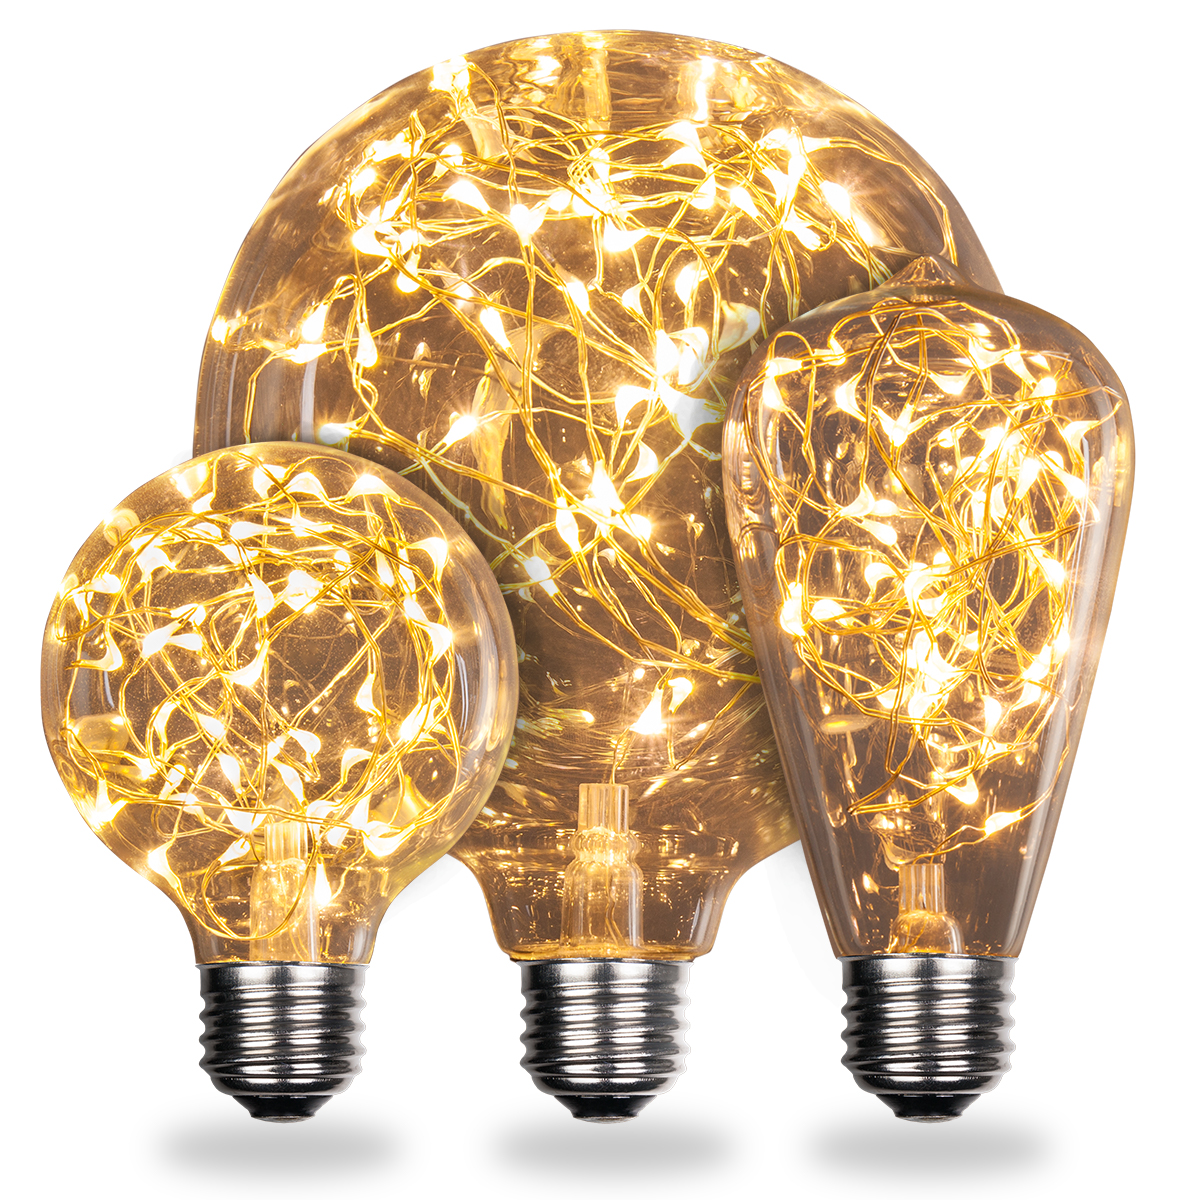 LEDImagine Fairy Light Bulbs